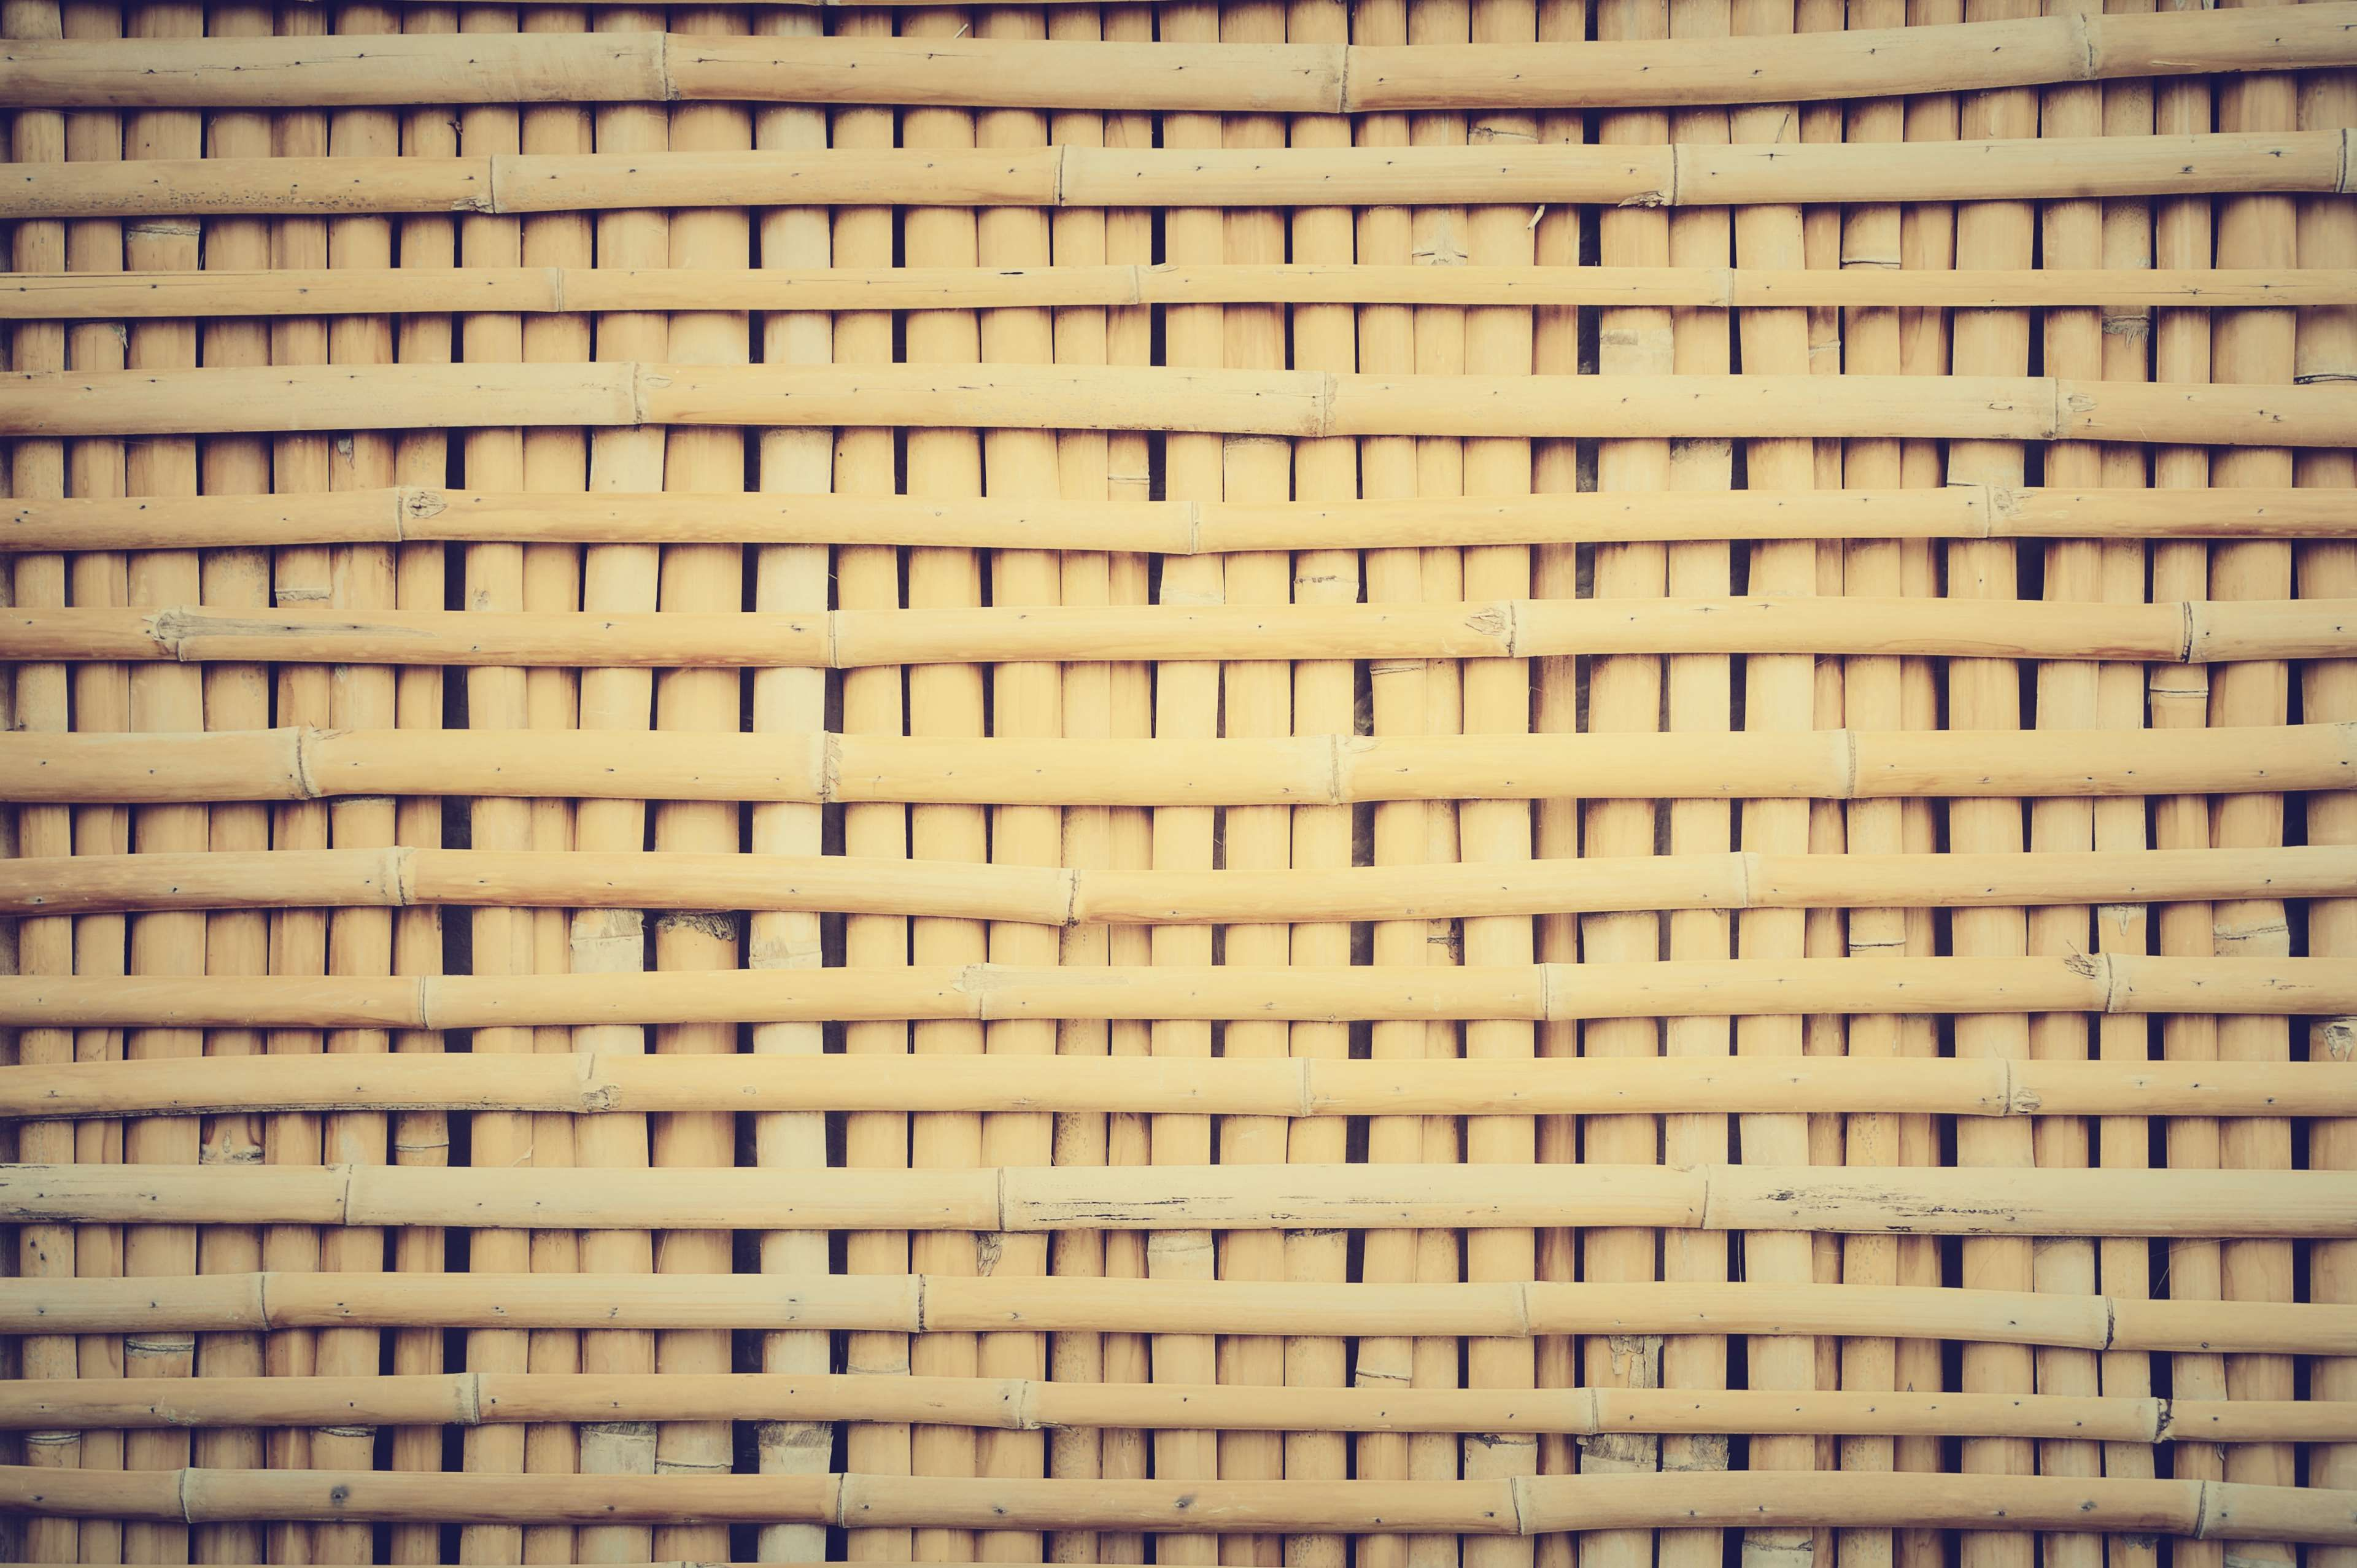 abstract #architecture #asia #asian #background #bamboo #bark #bind ...